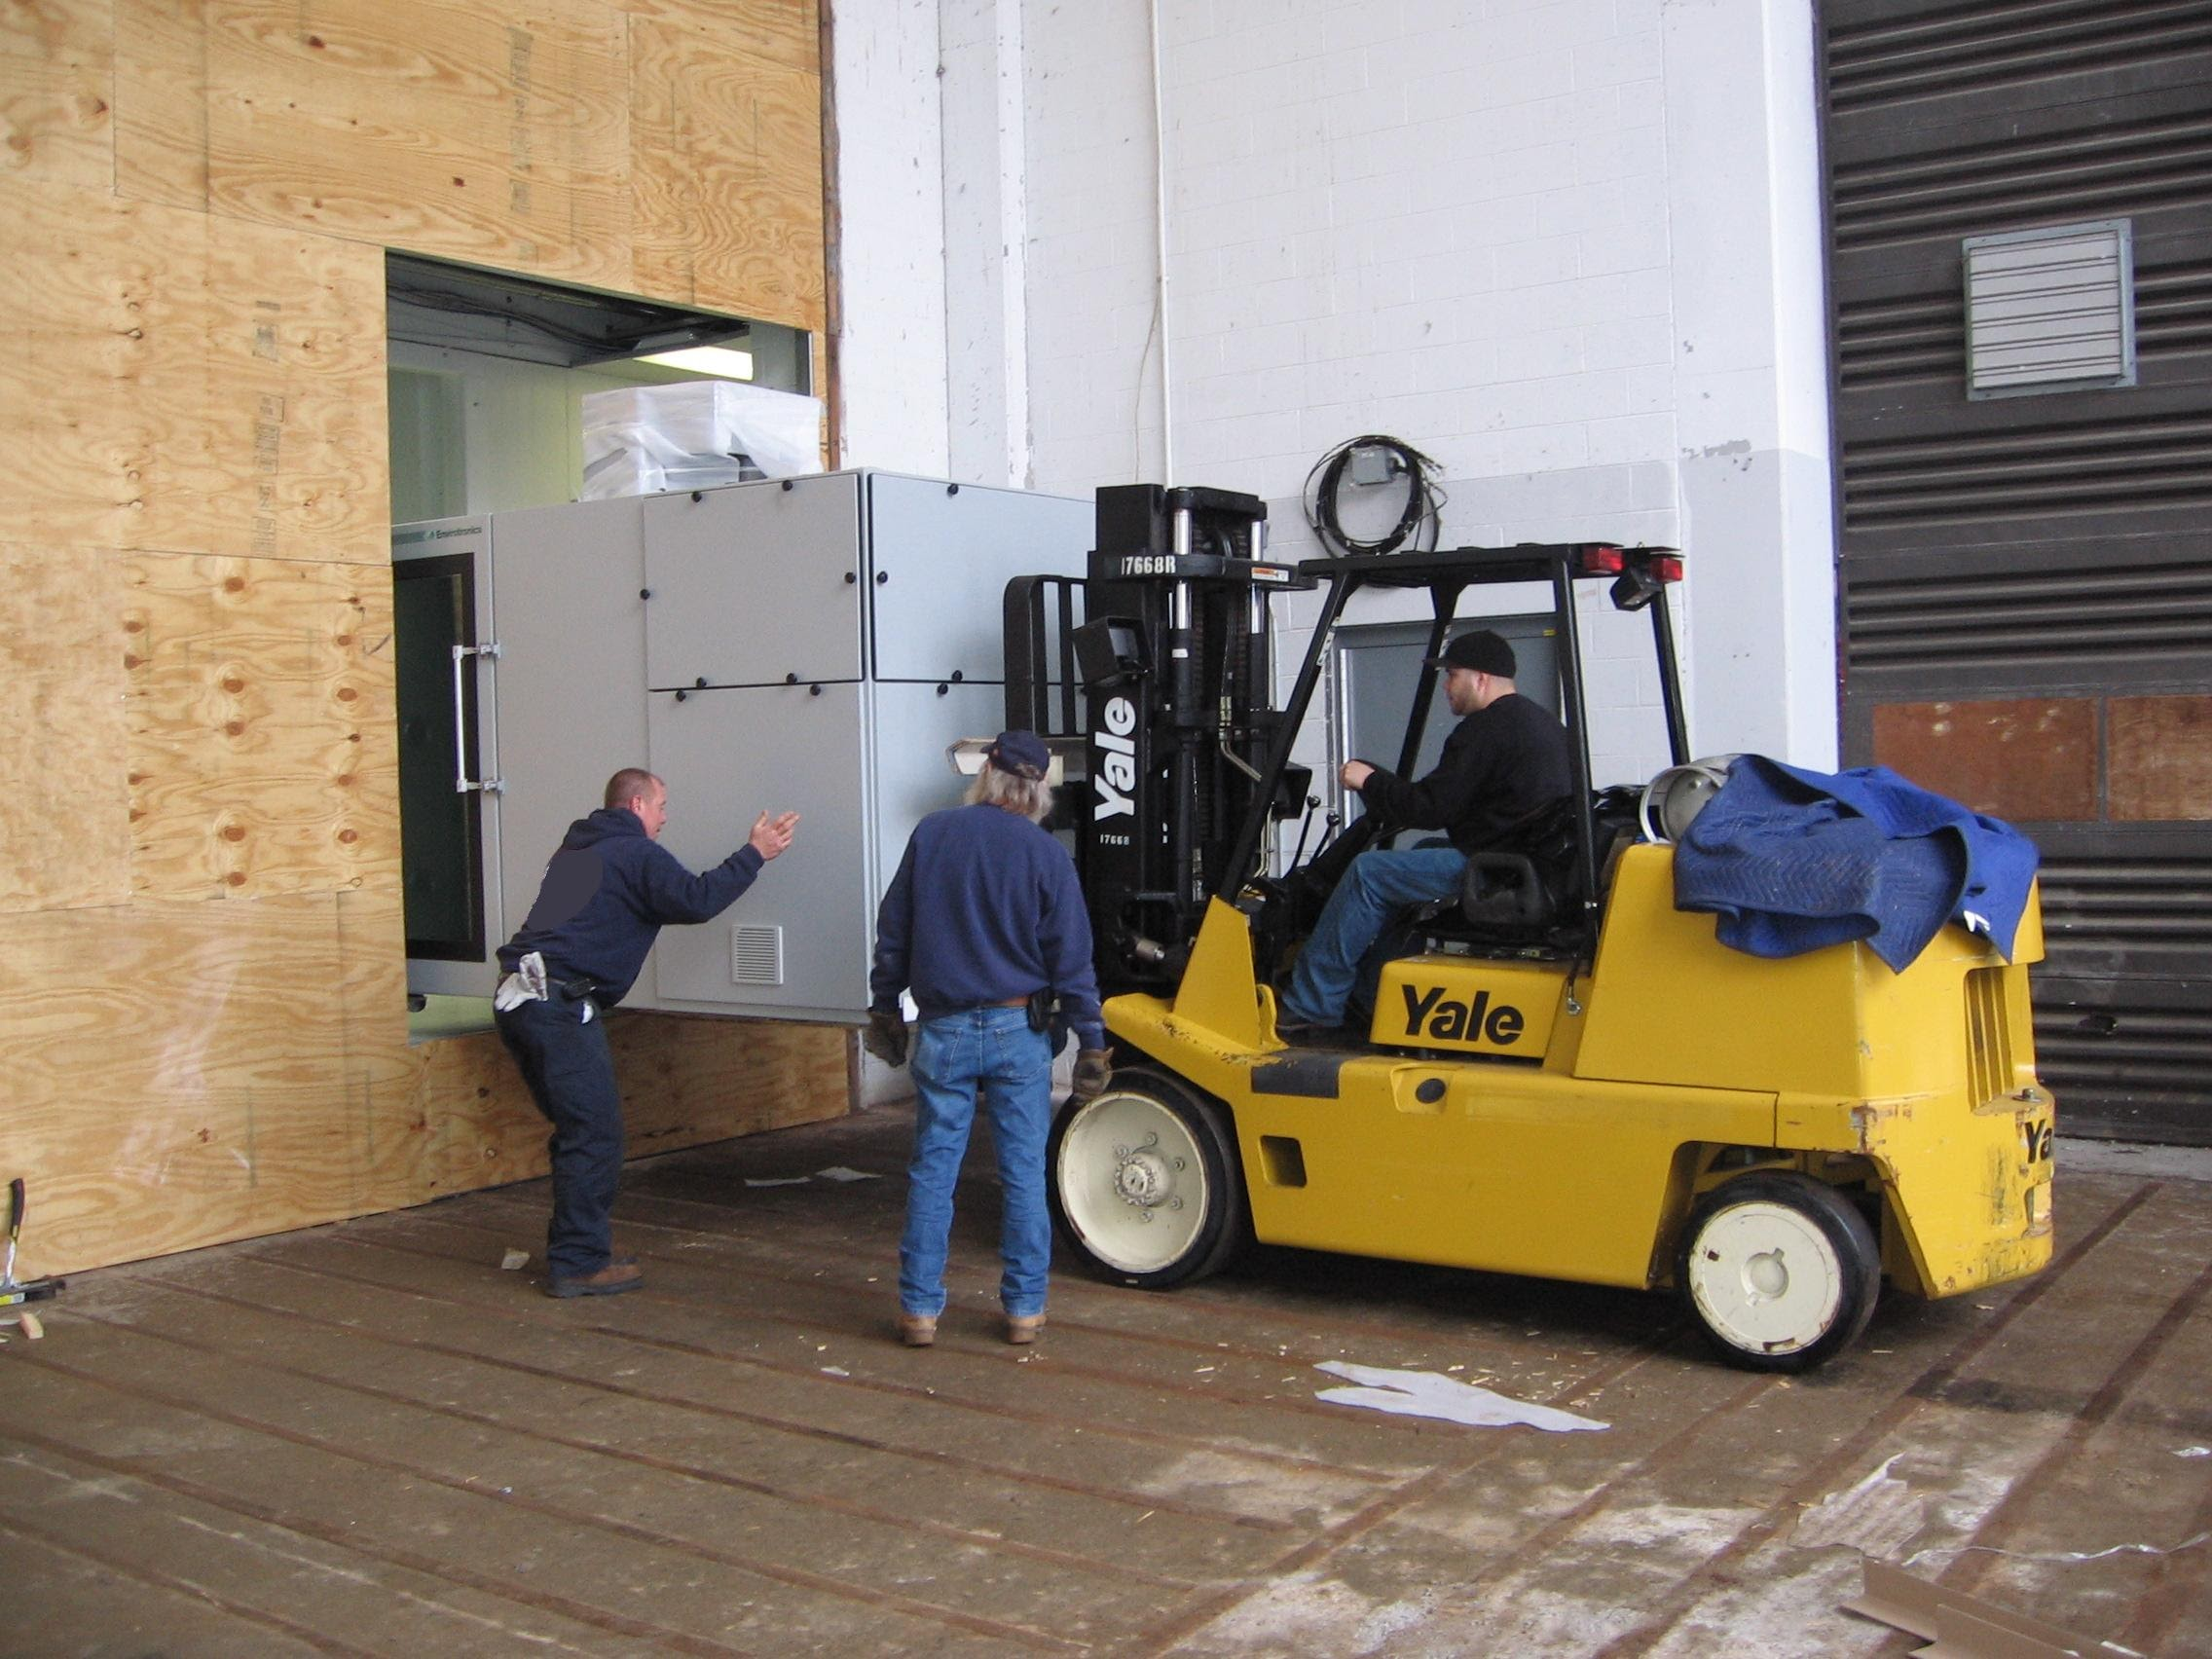 forklift moving large piece of equipment